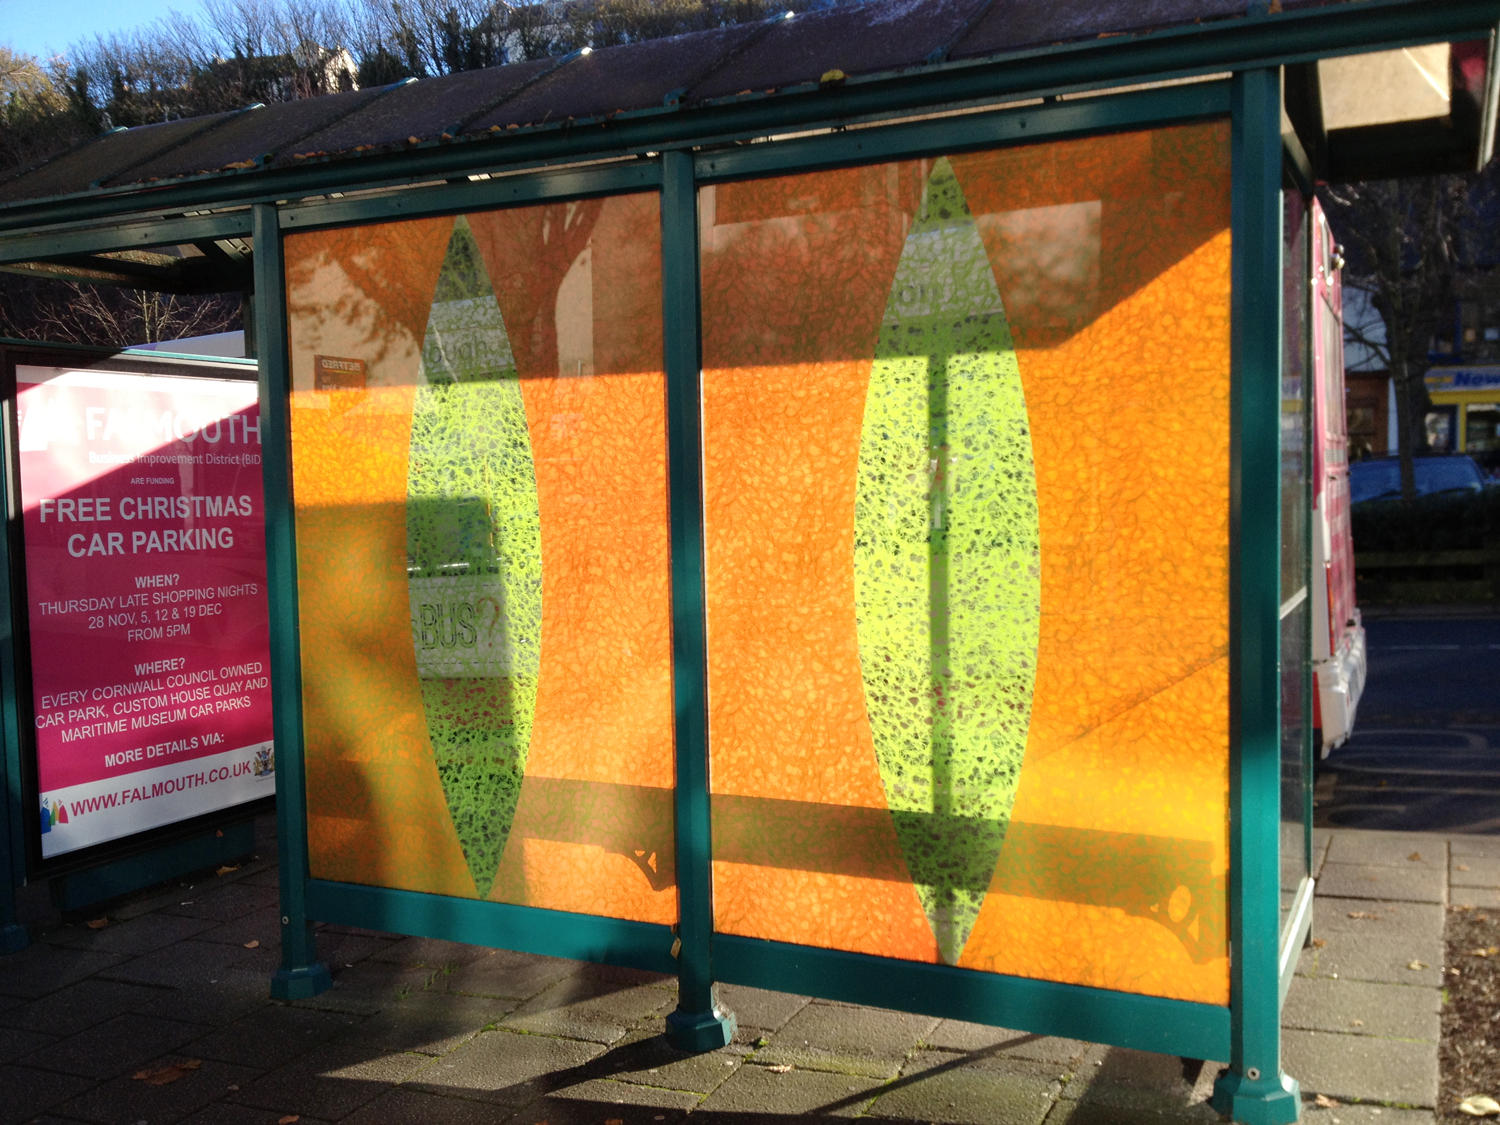 8 The Moor, Falmouth - Bus Shelter Panels.jpg